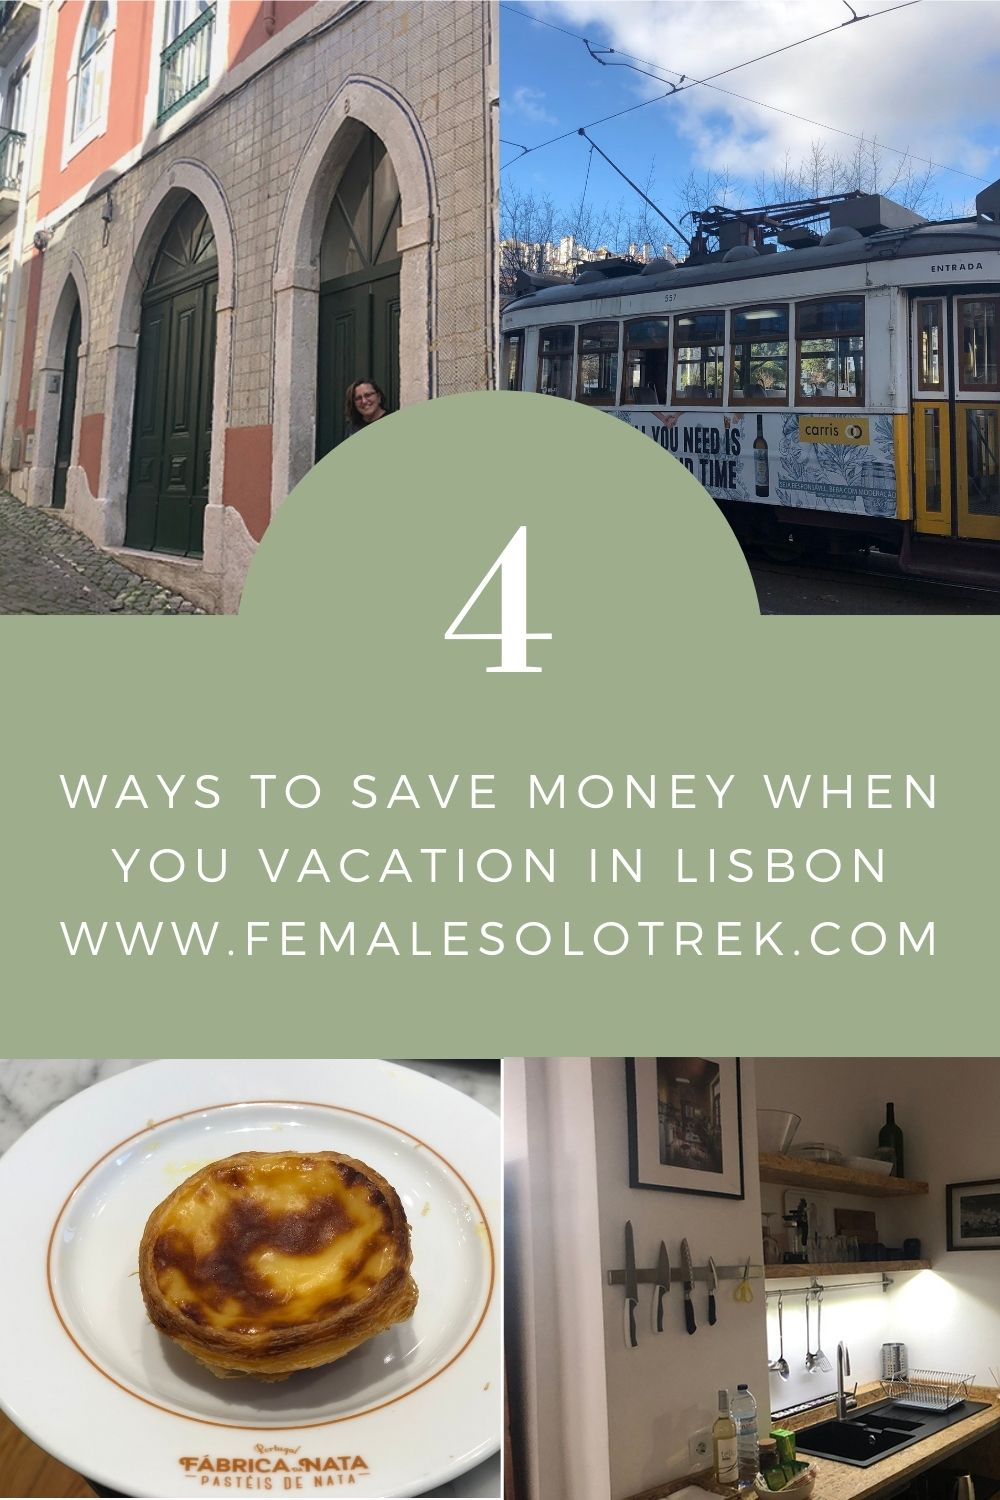 Save money by staying in an AirBnb in Lisbon